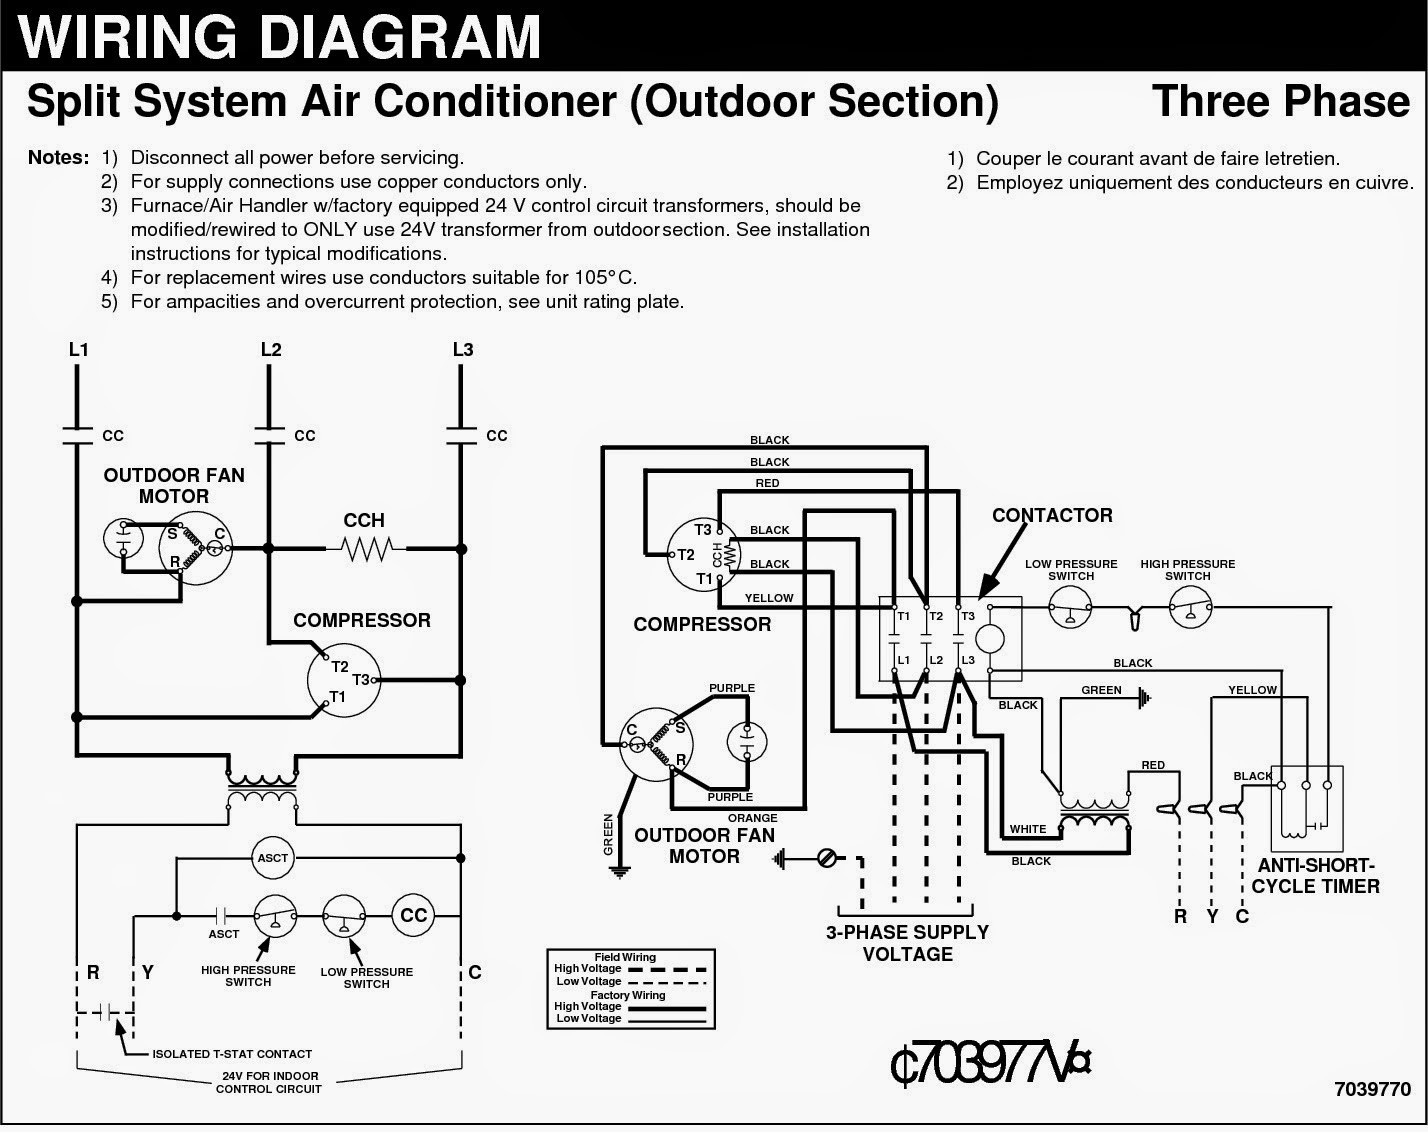 3 phase electrical plan wiring diagram3 phase electrical plan online wiring diagram3 phase electrical plan best wiring library